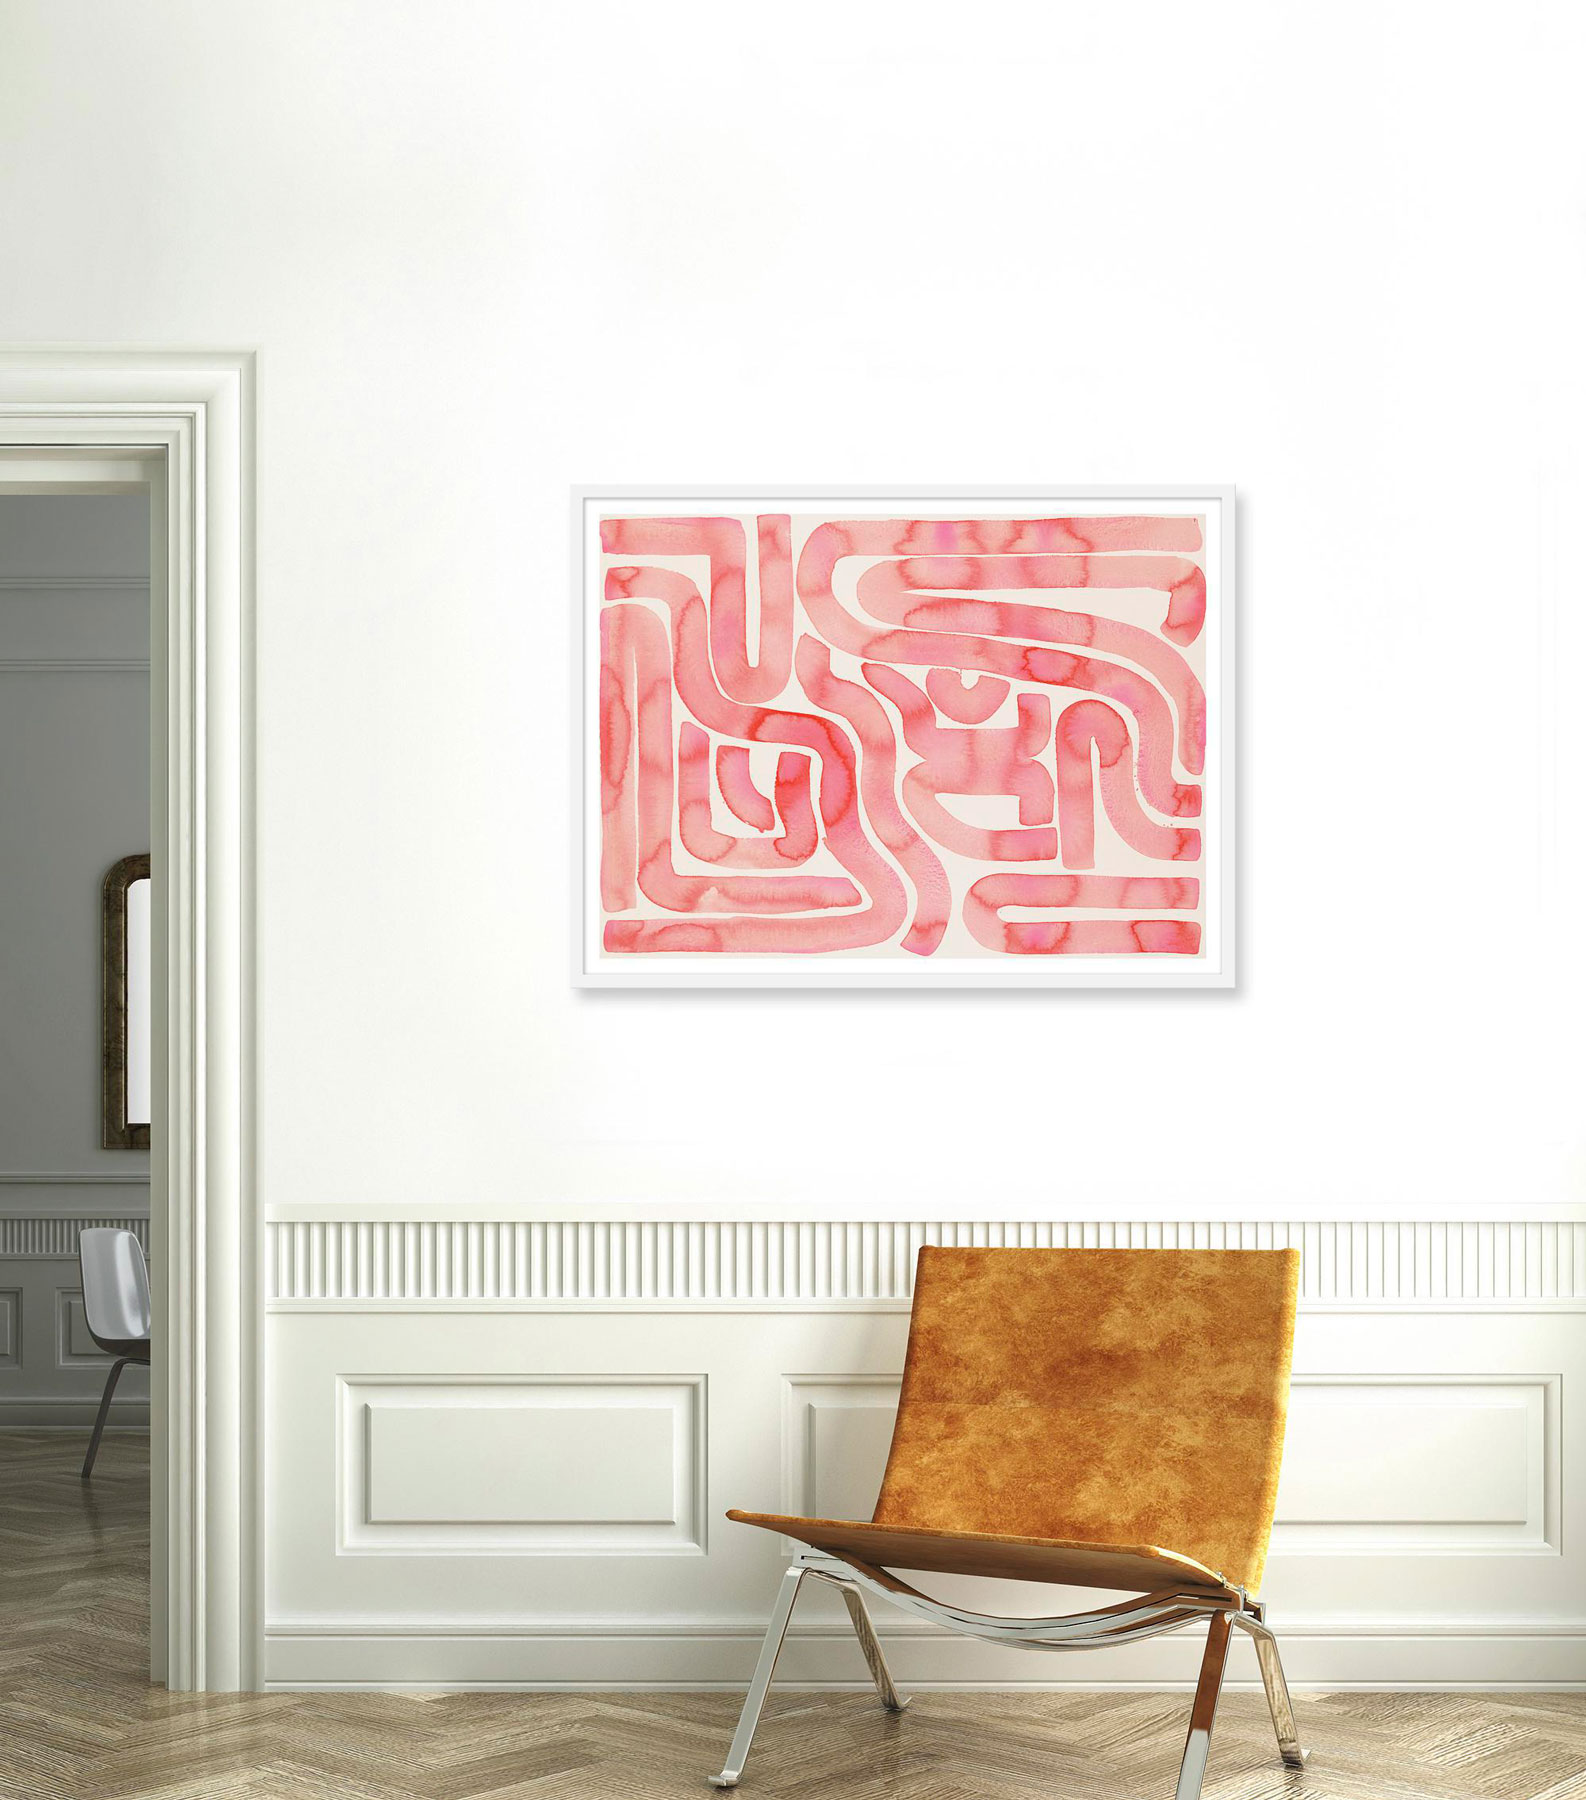 Pink wall art hanging in a hallway